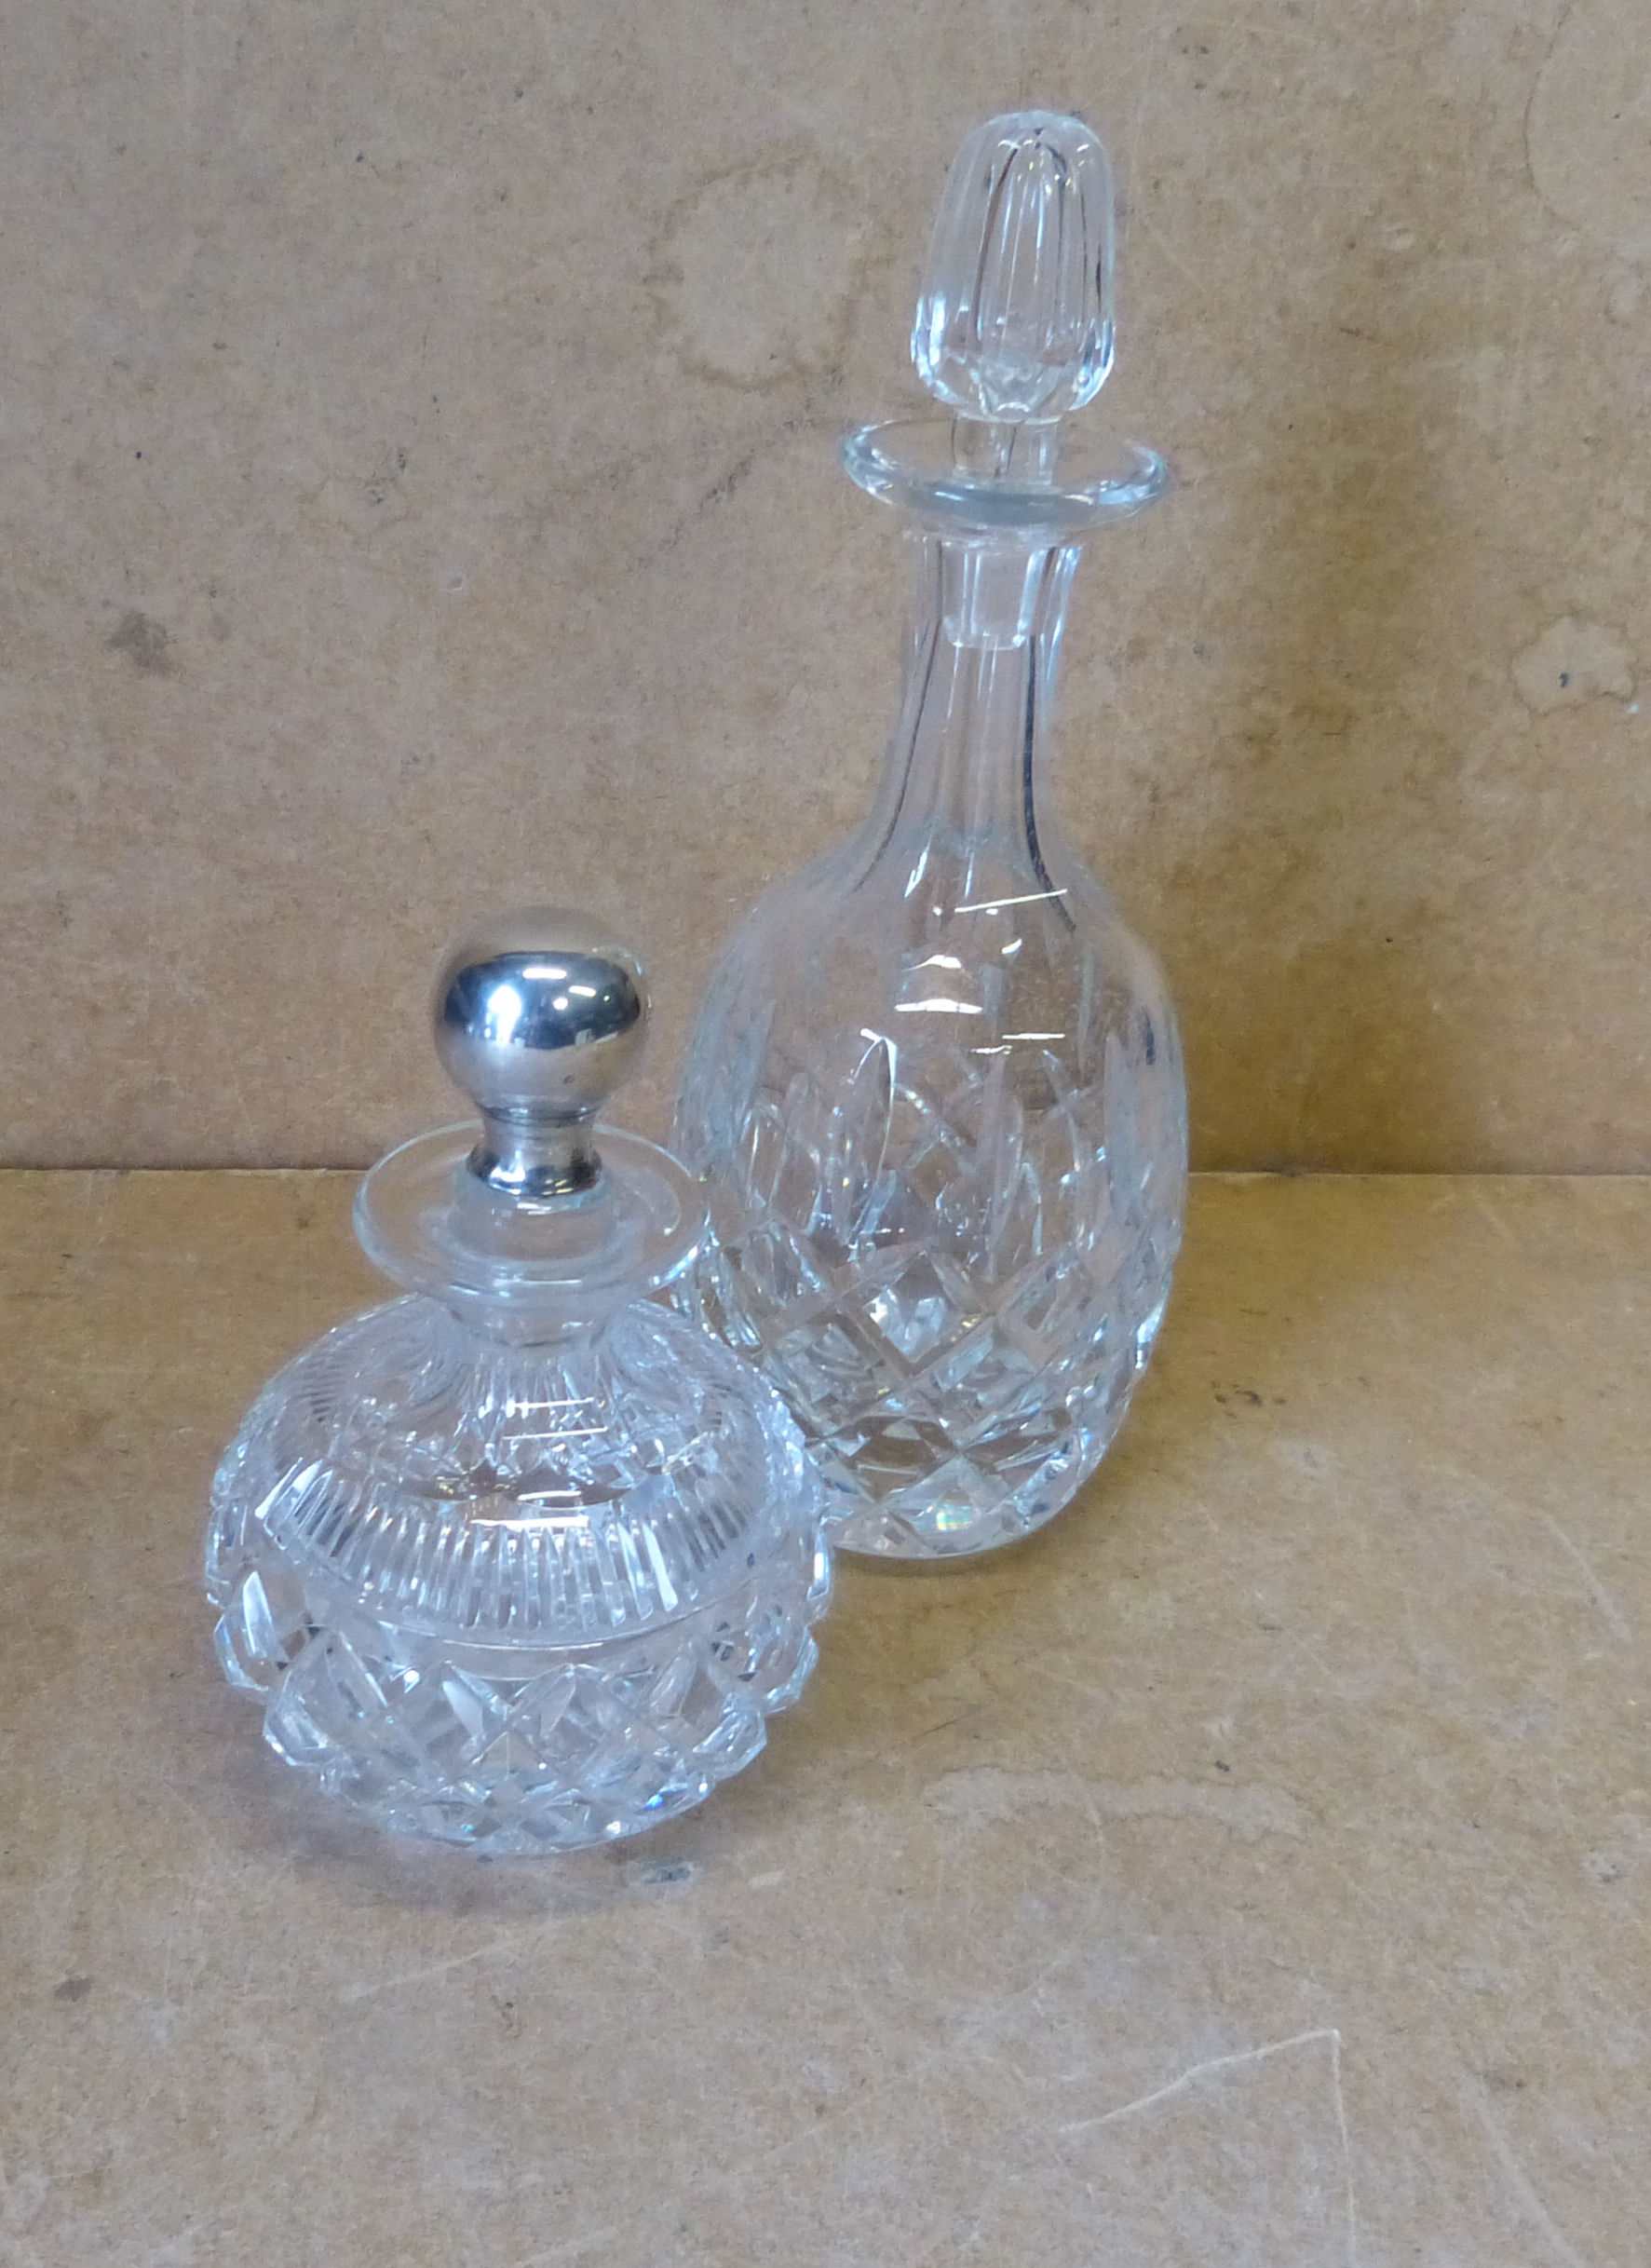 A Cut Glass Bulbous Thin Neck Scent Bottle with stopper having star cut decoration